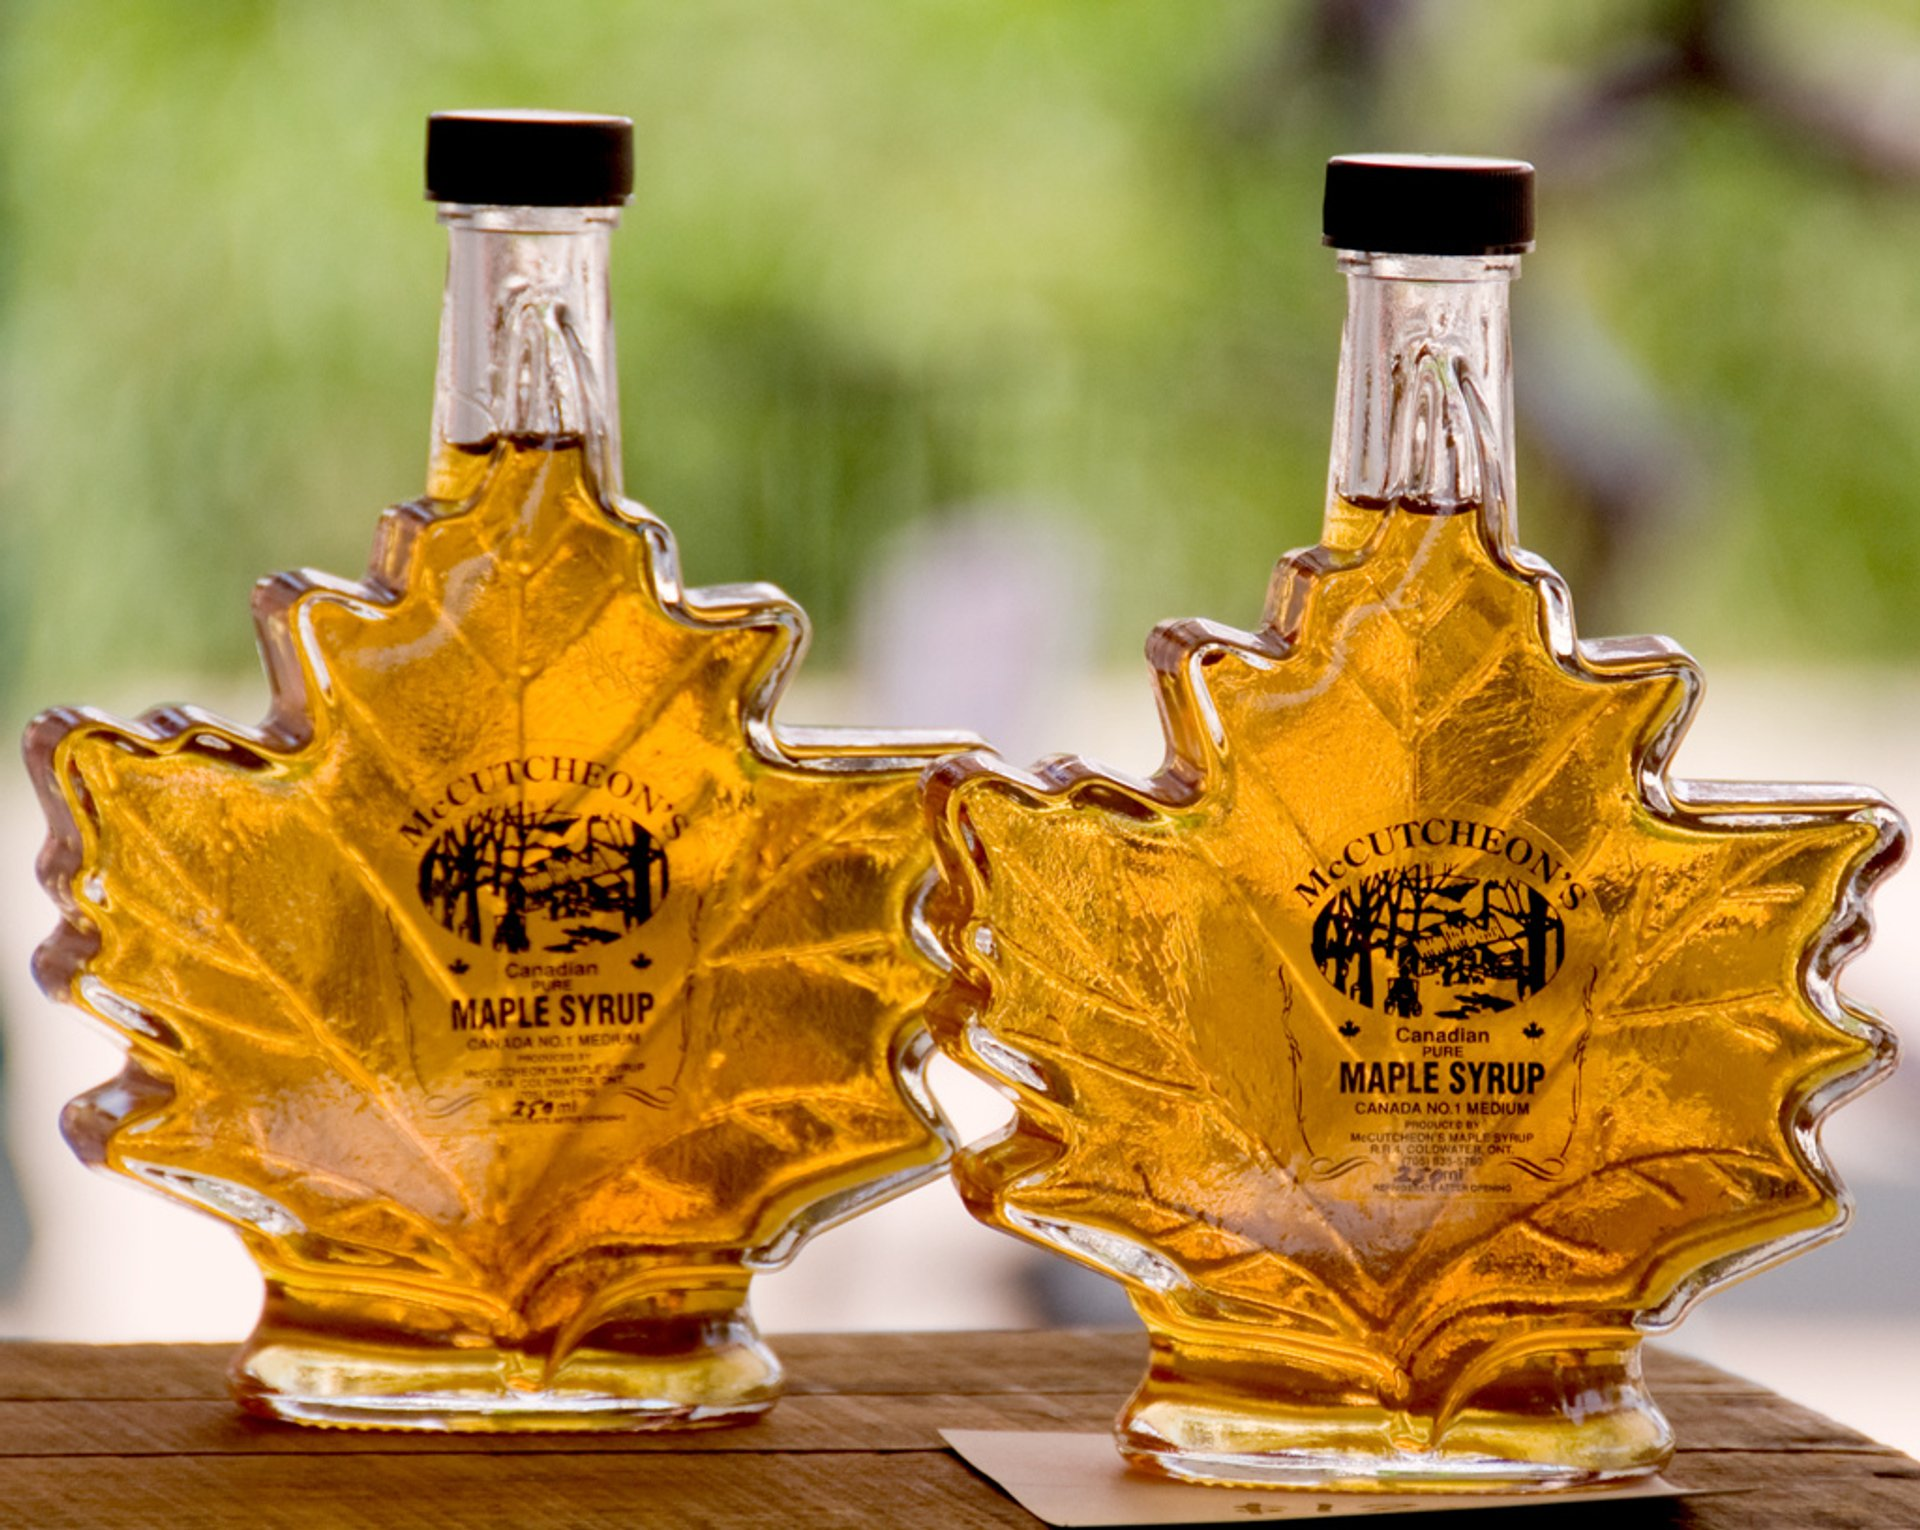 Fresh Maple Syrup in Toronto 2019 - Best Time